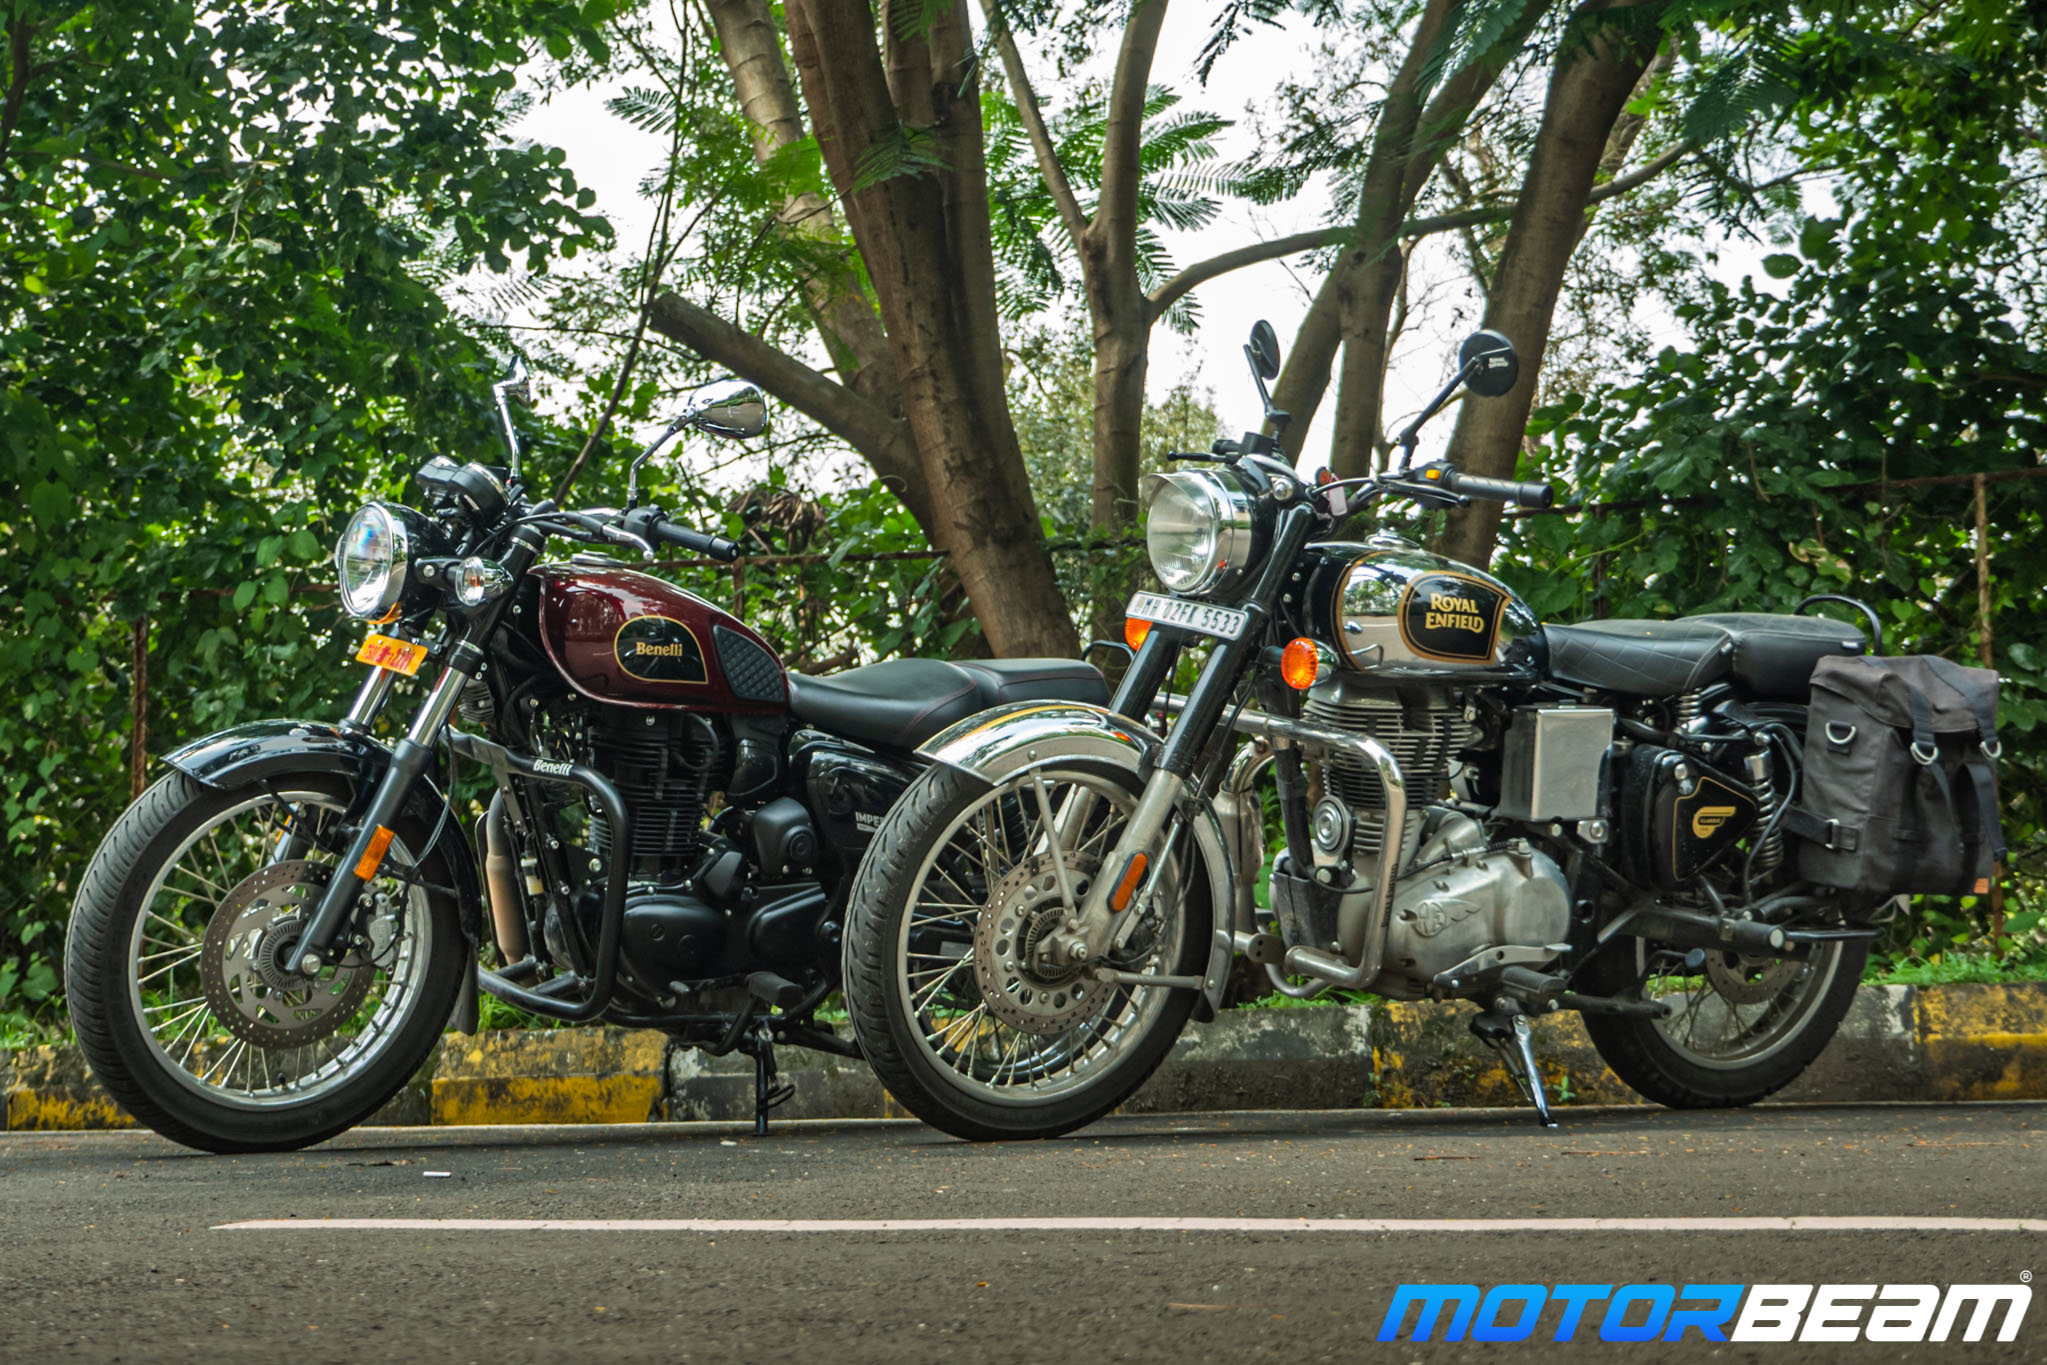 Benelli Imperiale 400 vs Royal Enfield Classic 350 Comparison Review 7